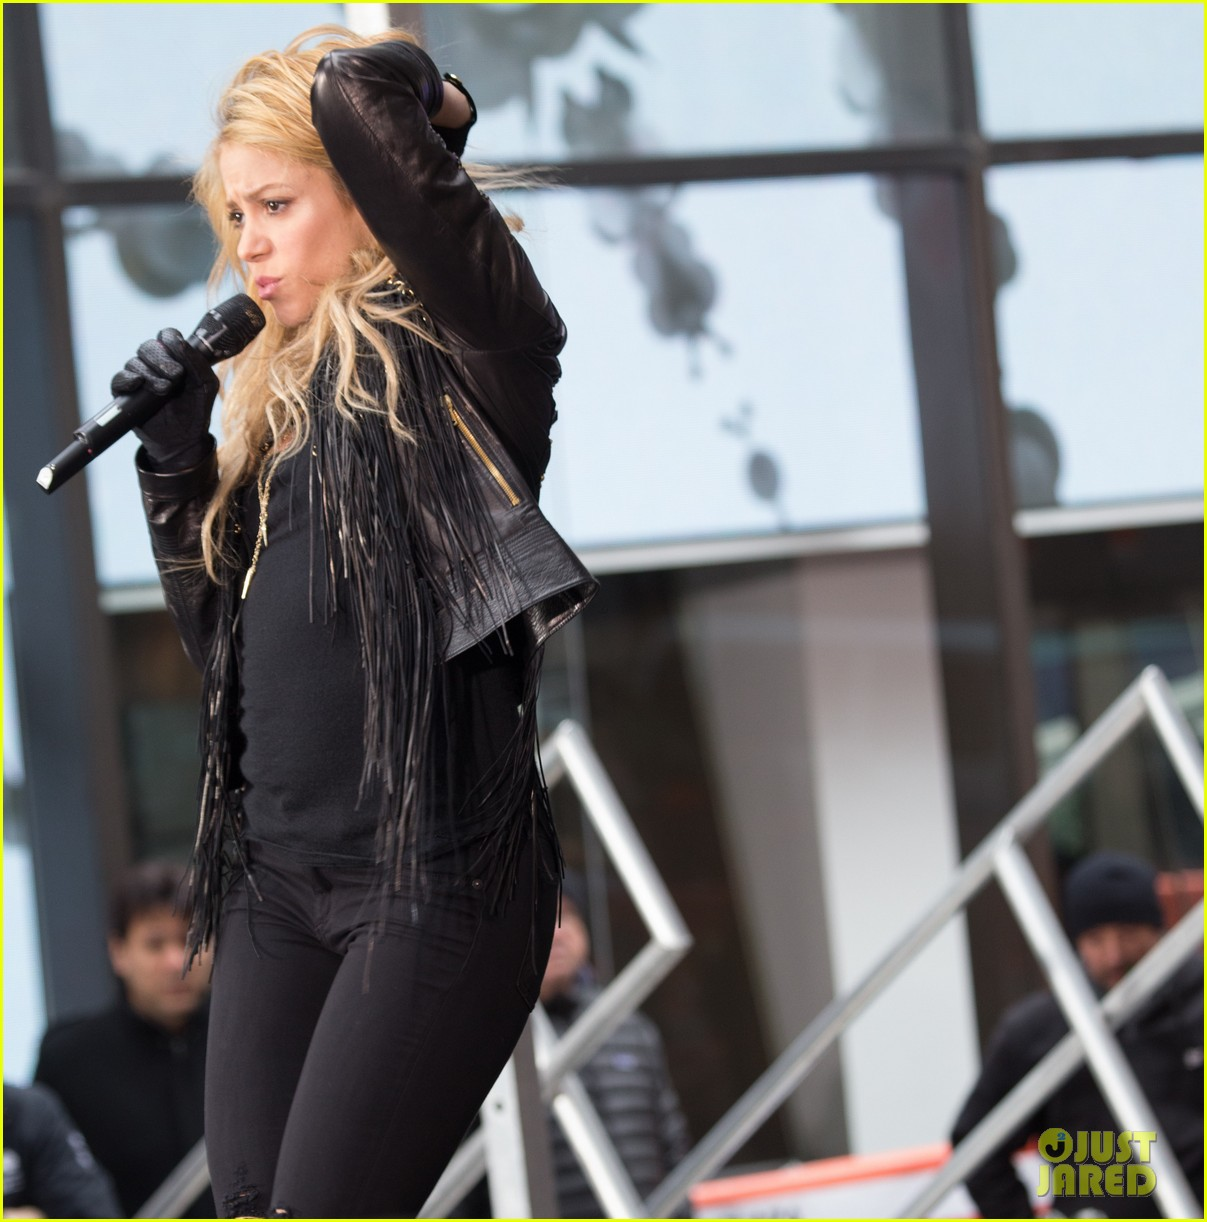 shakira brings the house down with hips dont lie empire on today show 06